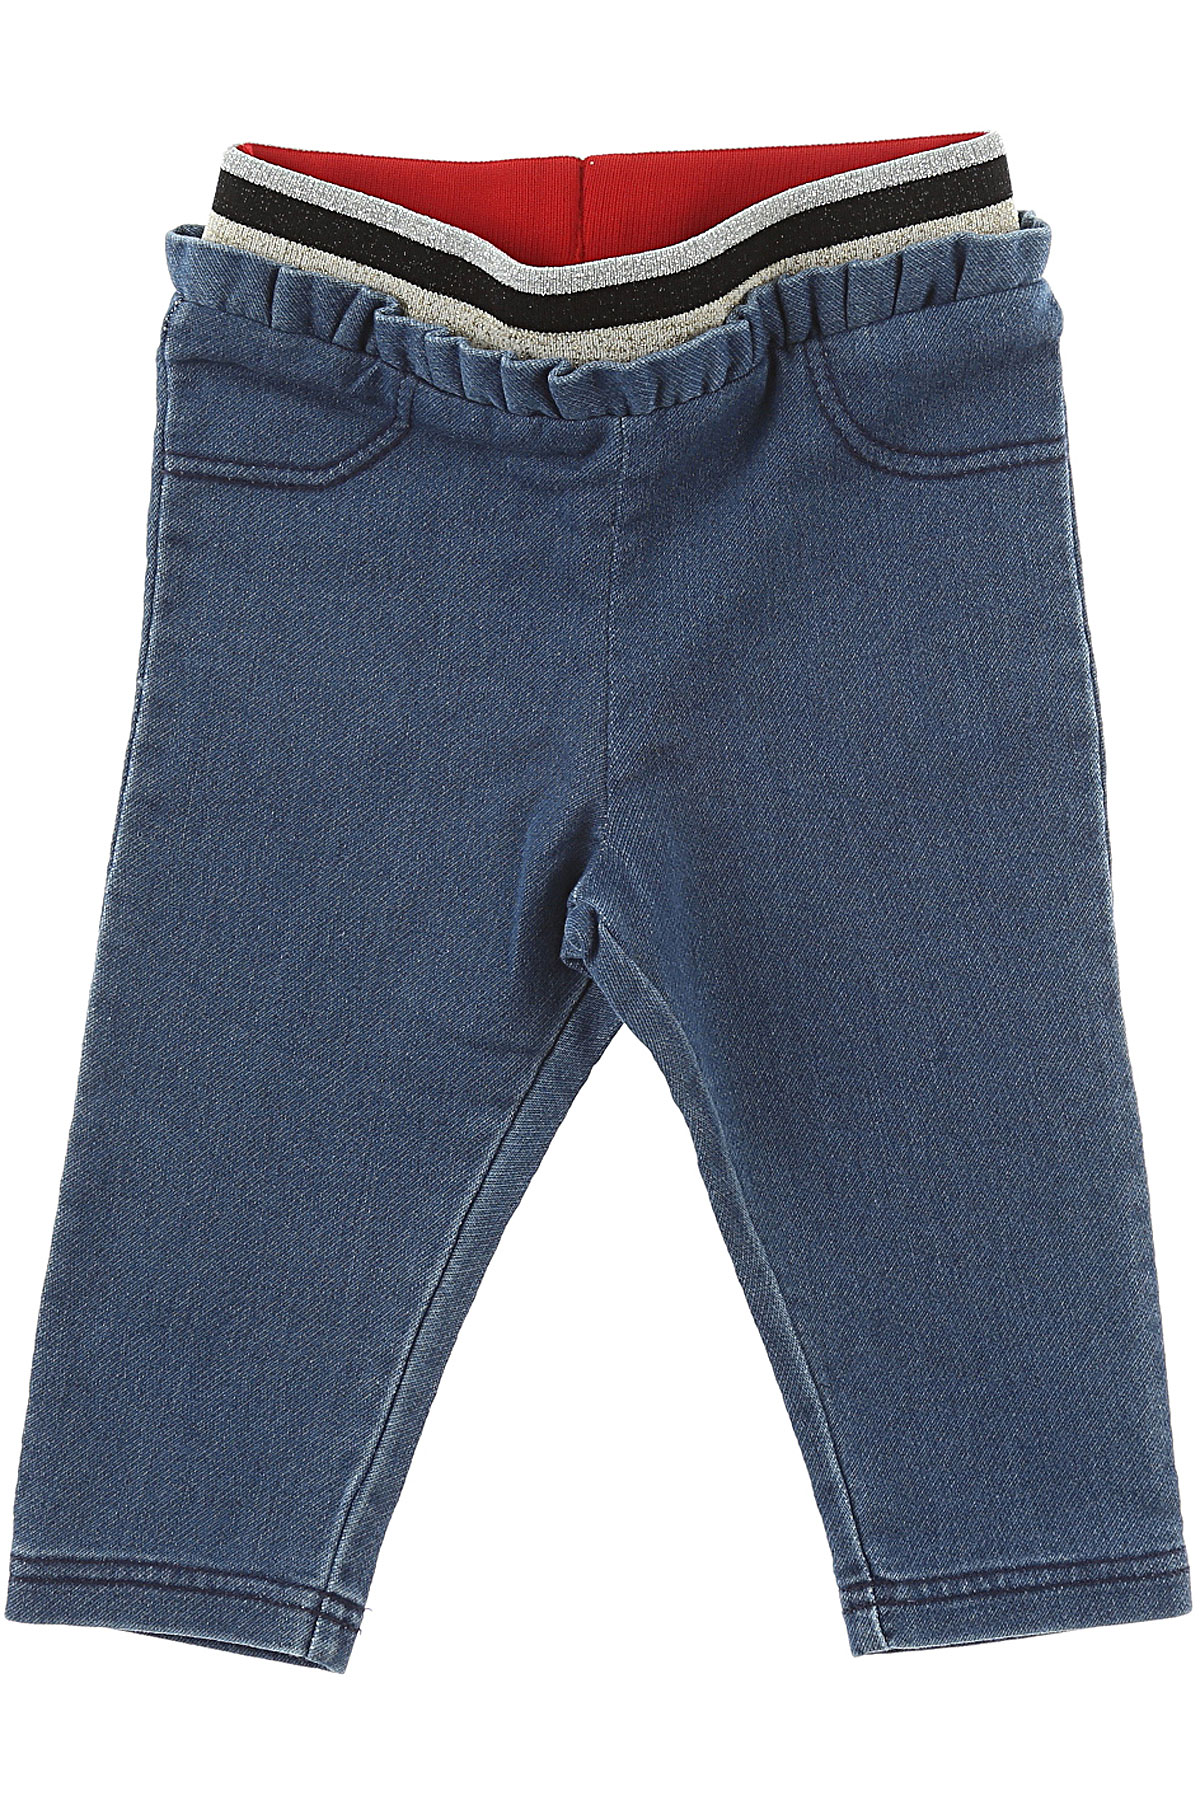 Image of Marc Jacobs Baby Jeans for Girls, Blue Denim, Cotton, 2017, 12M 18M 2Y 3M 3Y 6M 9M